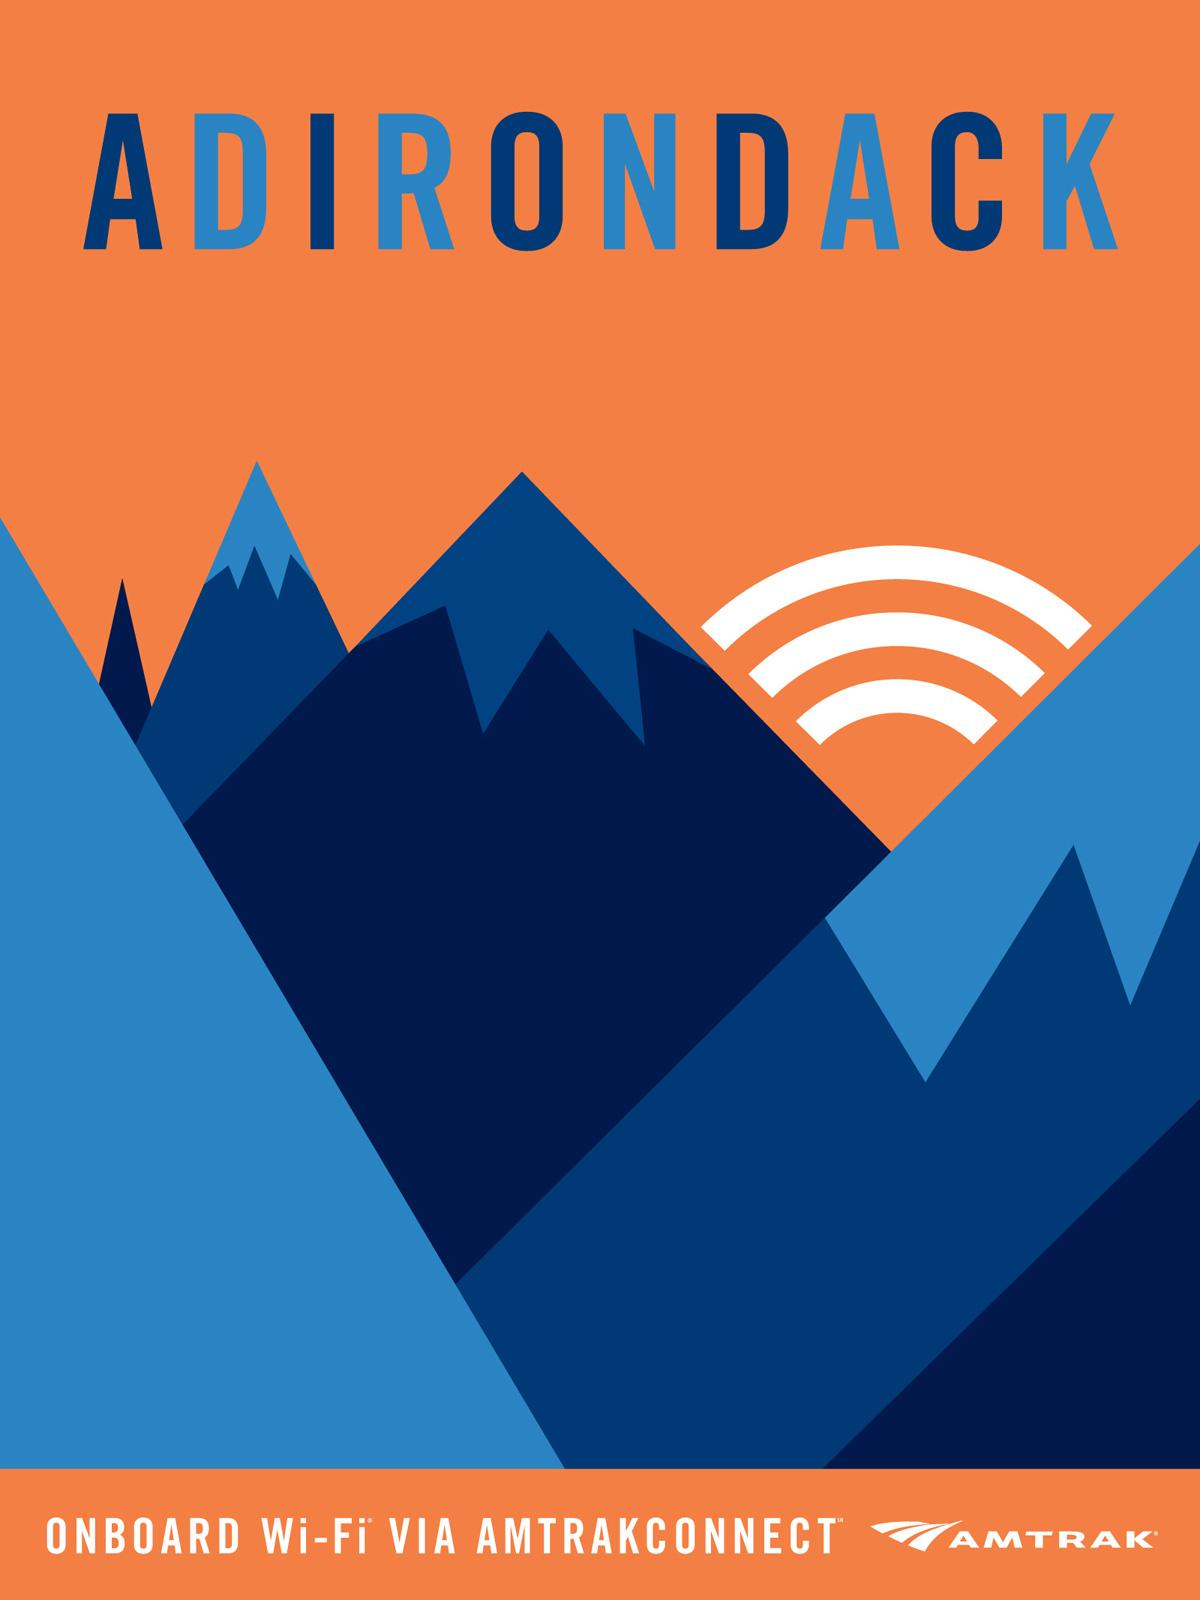 Amtrak Outdoor Ad -  AmtrakConnect, Adirondack